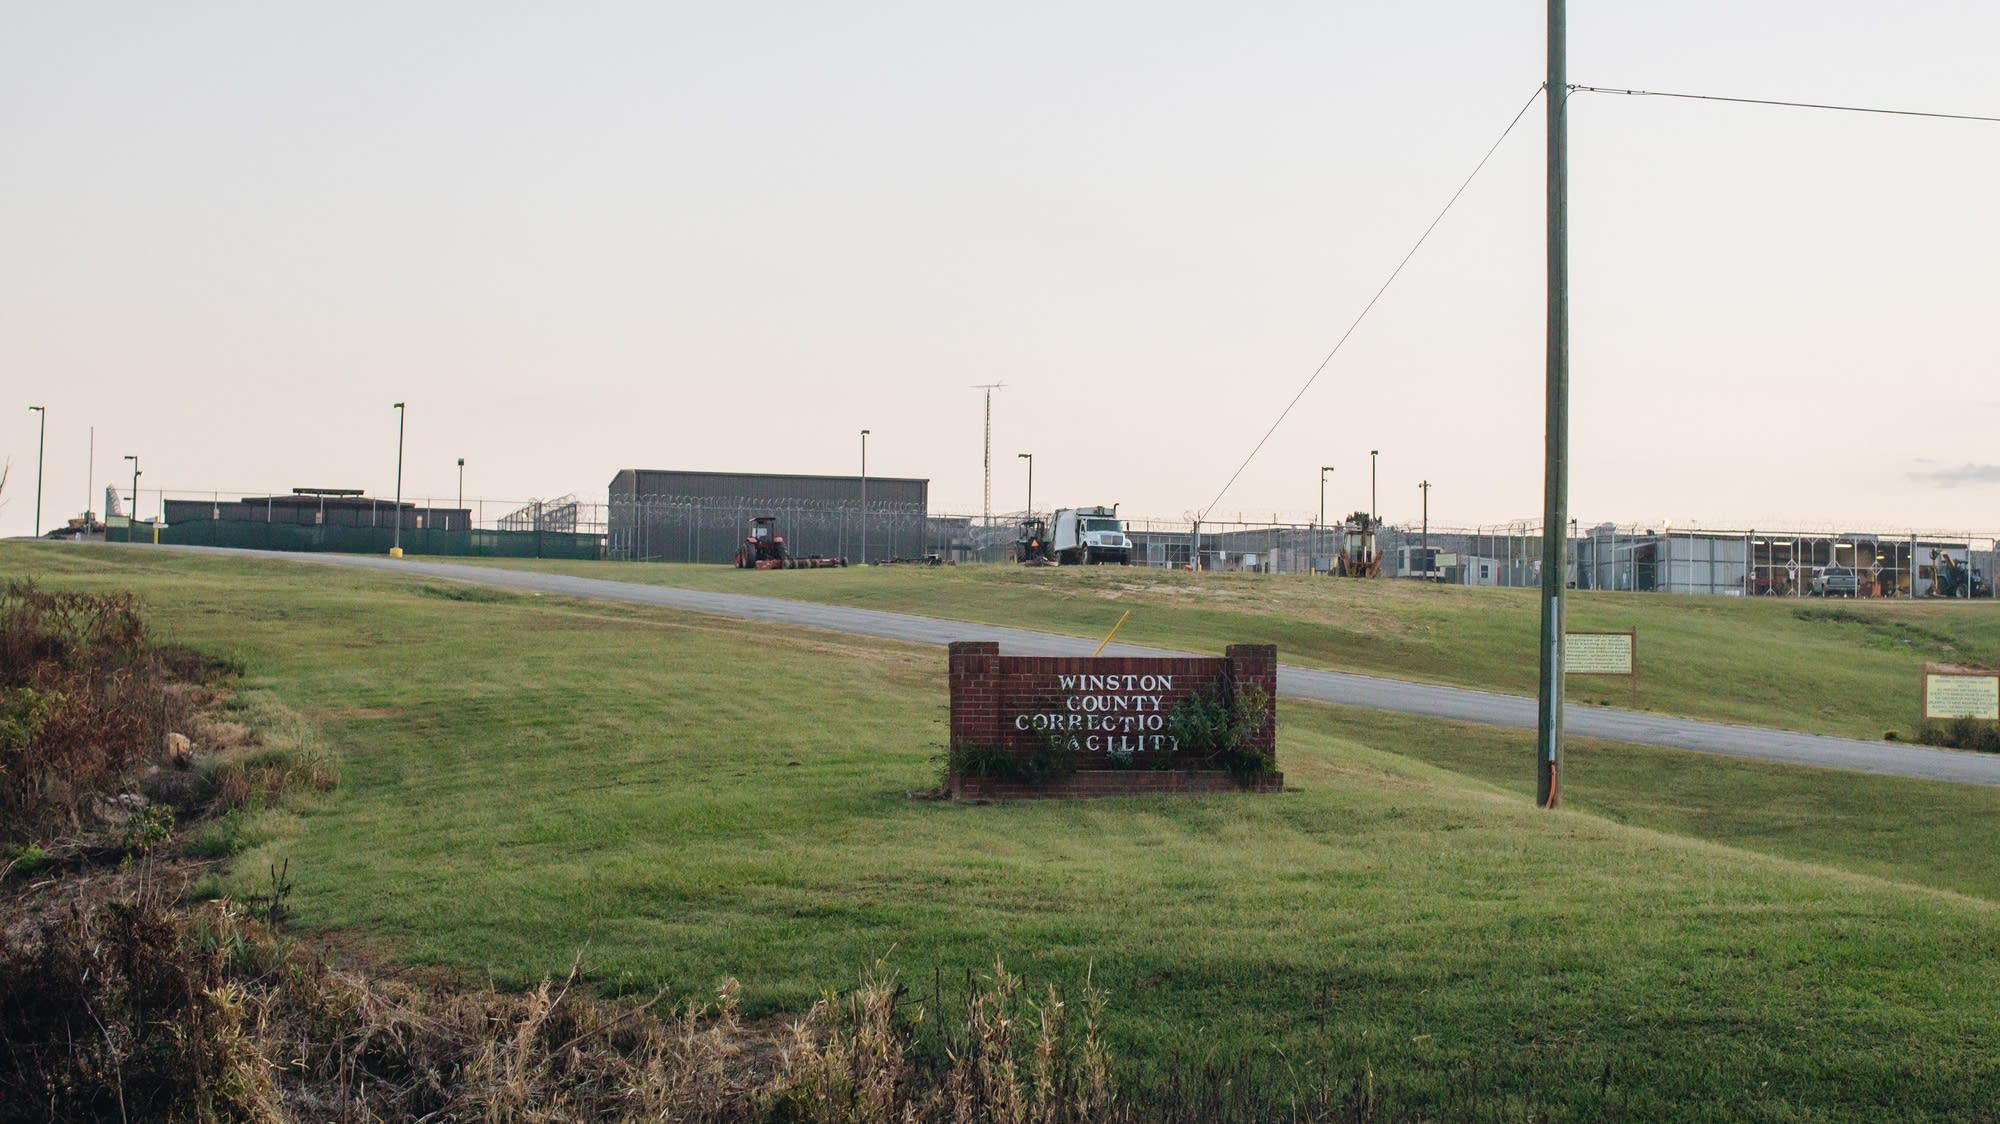 Winston-Choctaw County Correctional Facility